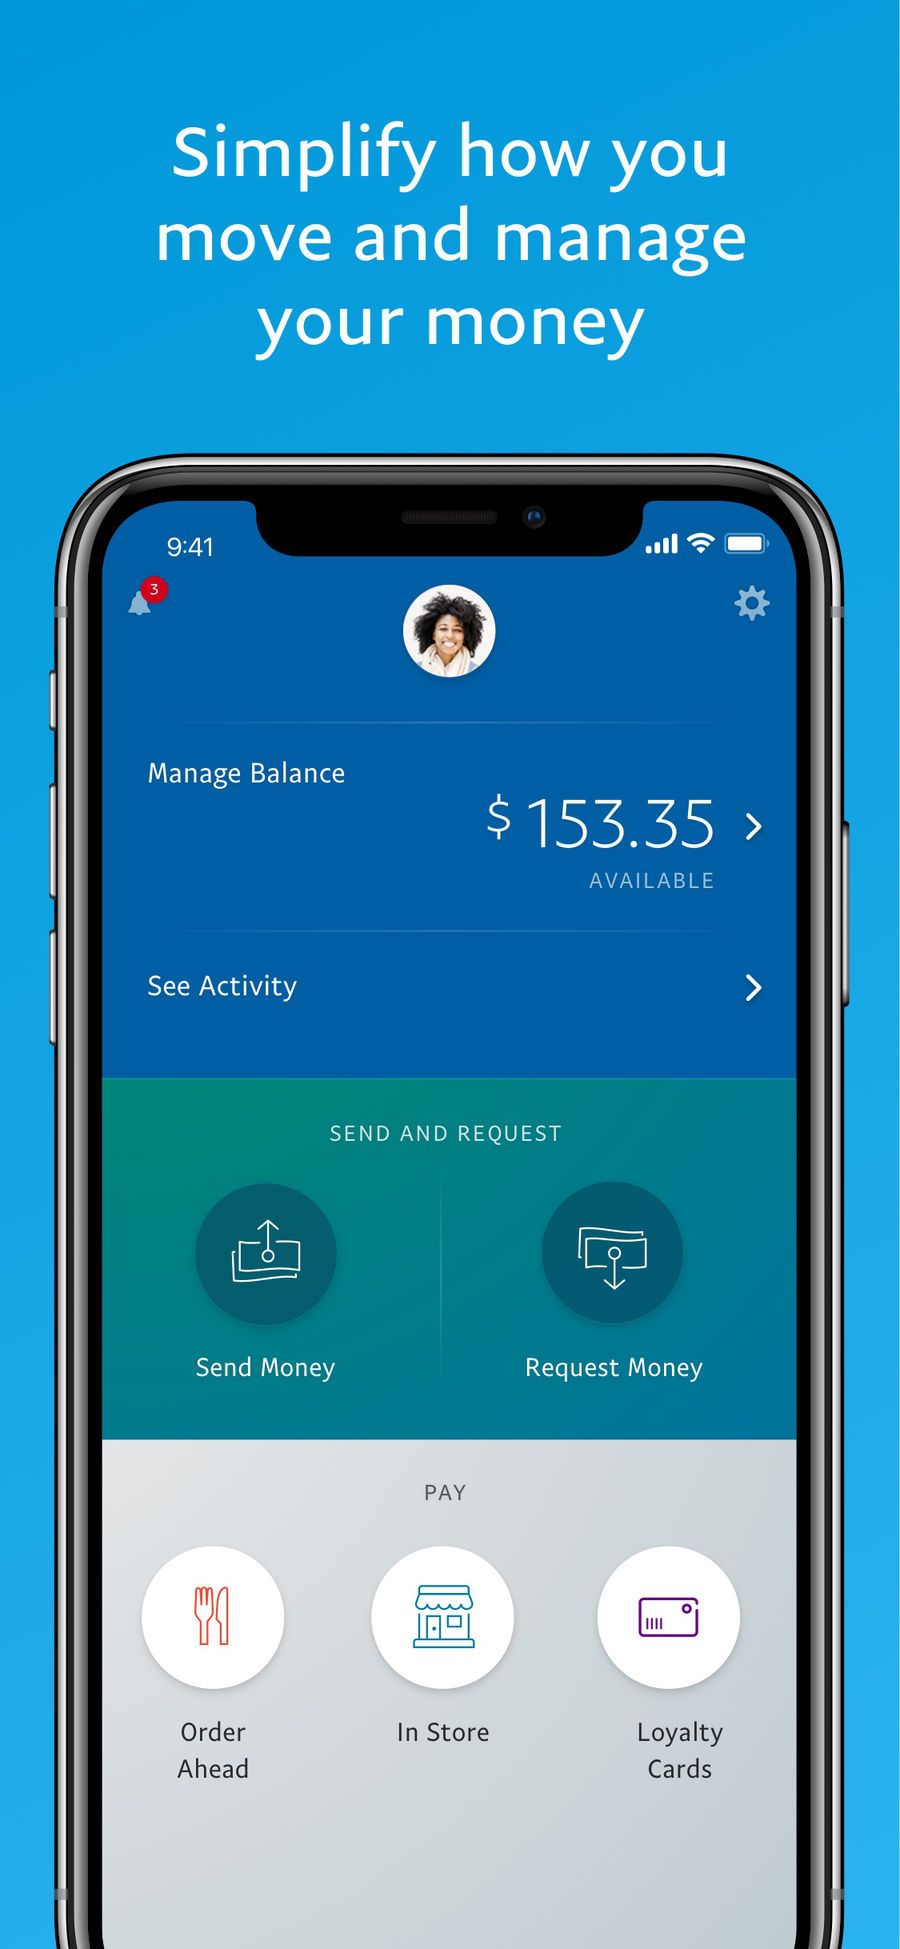 How To Accept Money On Paypal Mobile